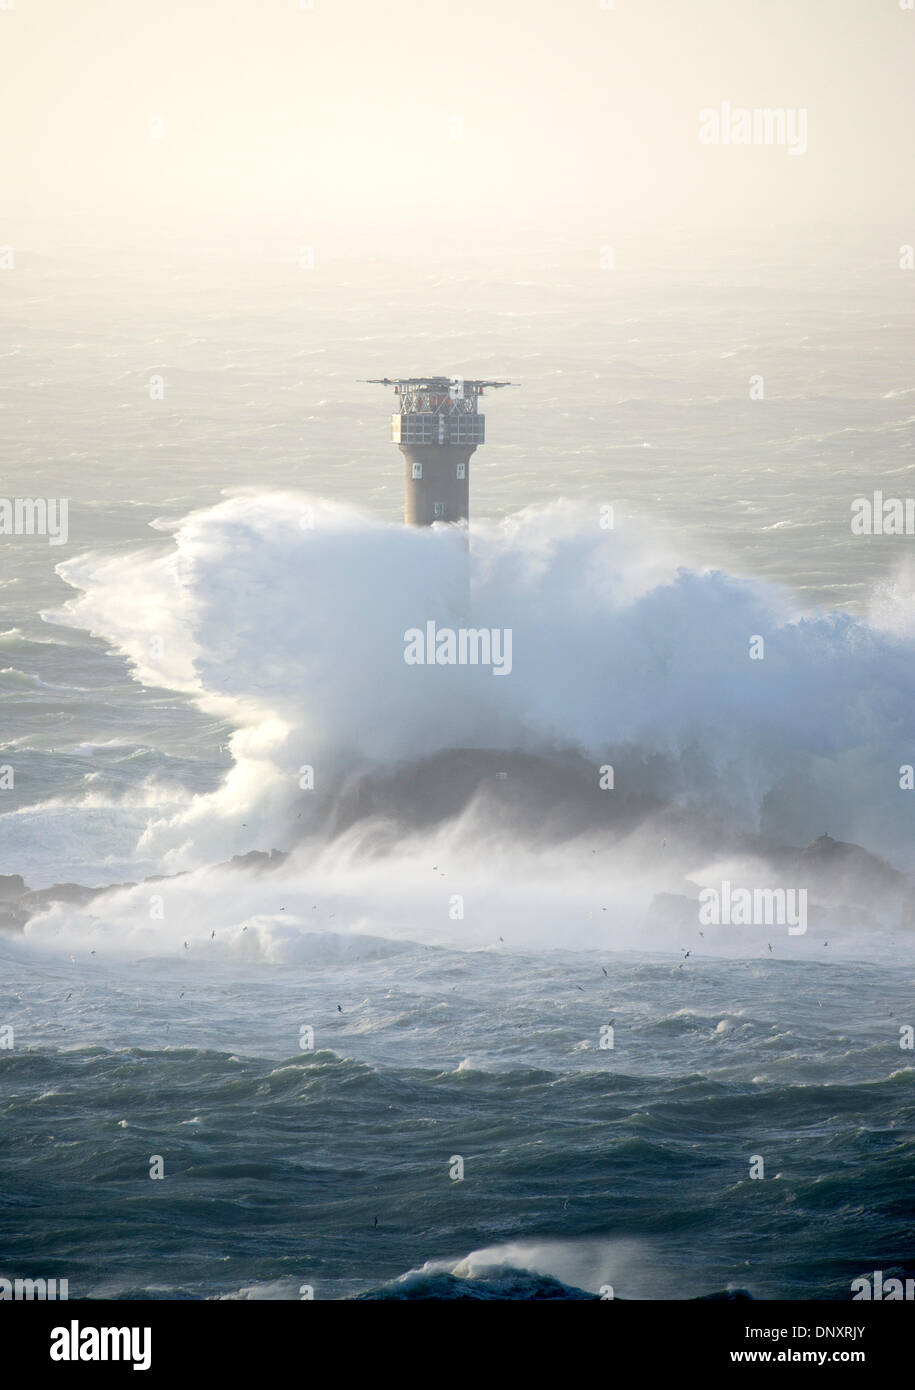 Lands End, UK. 6th Jan, 2014.  Storm Hercules, generates strong winds and waves that batter the Longships Lighthouse at Lands End, Cornwall, as stormy weather sweeps across the West of the UK. Credit:  Bob Sharples/Alamy Live News - Stock Image